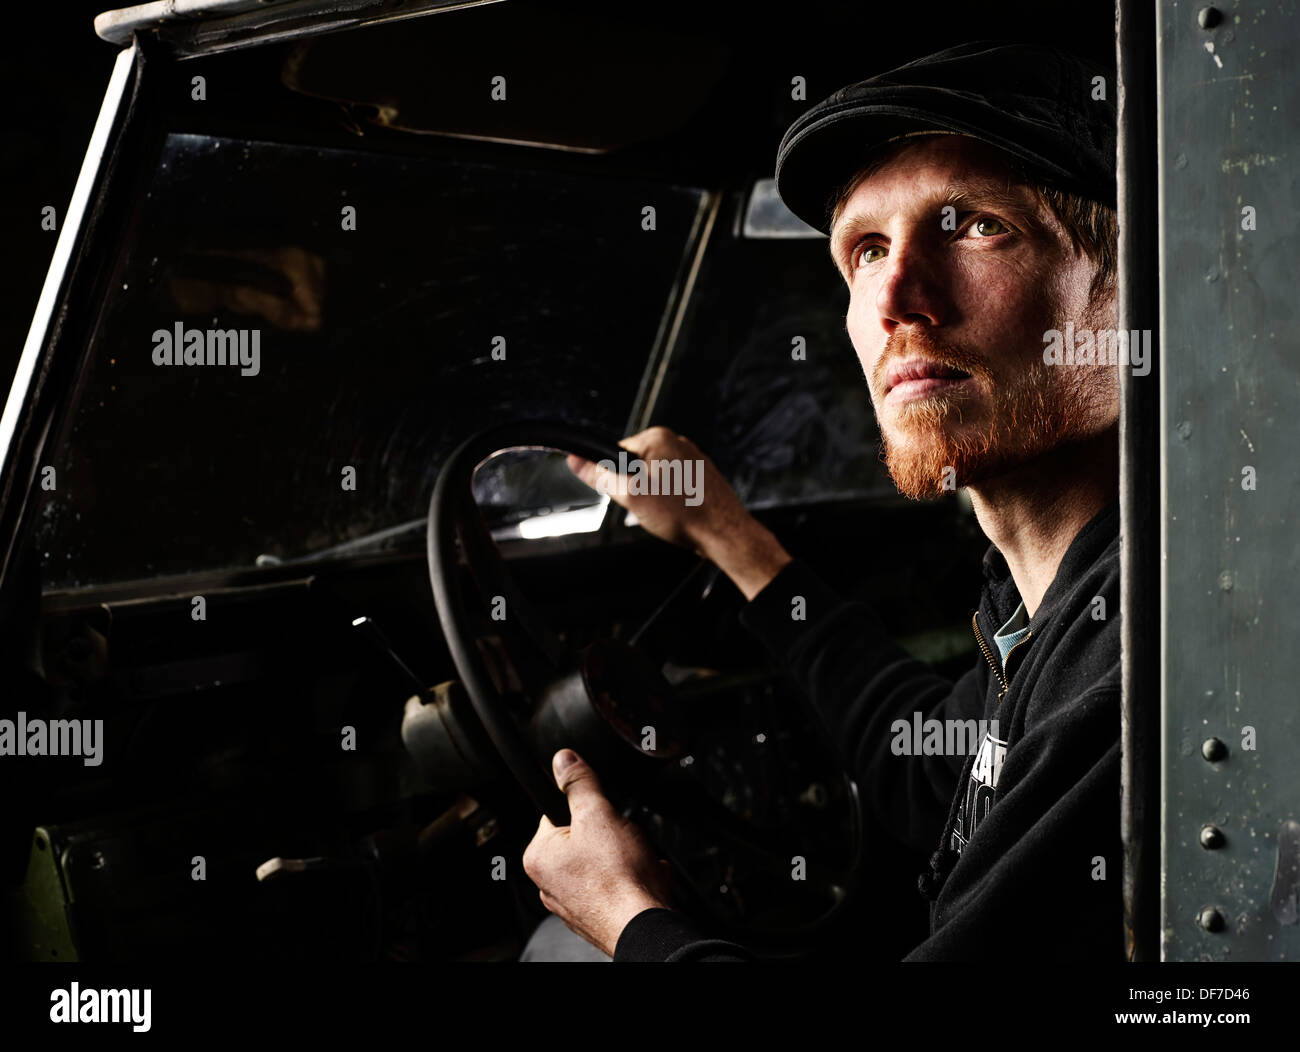 Man with a hat sitting in the driver's seat of an old car, looking up, Inneralpbach, Tyrol, Austria - Stock Image